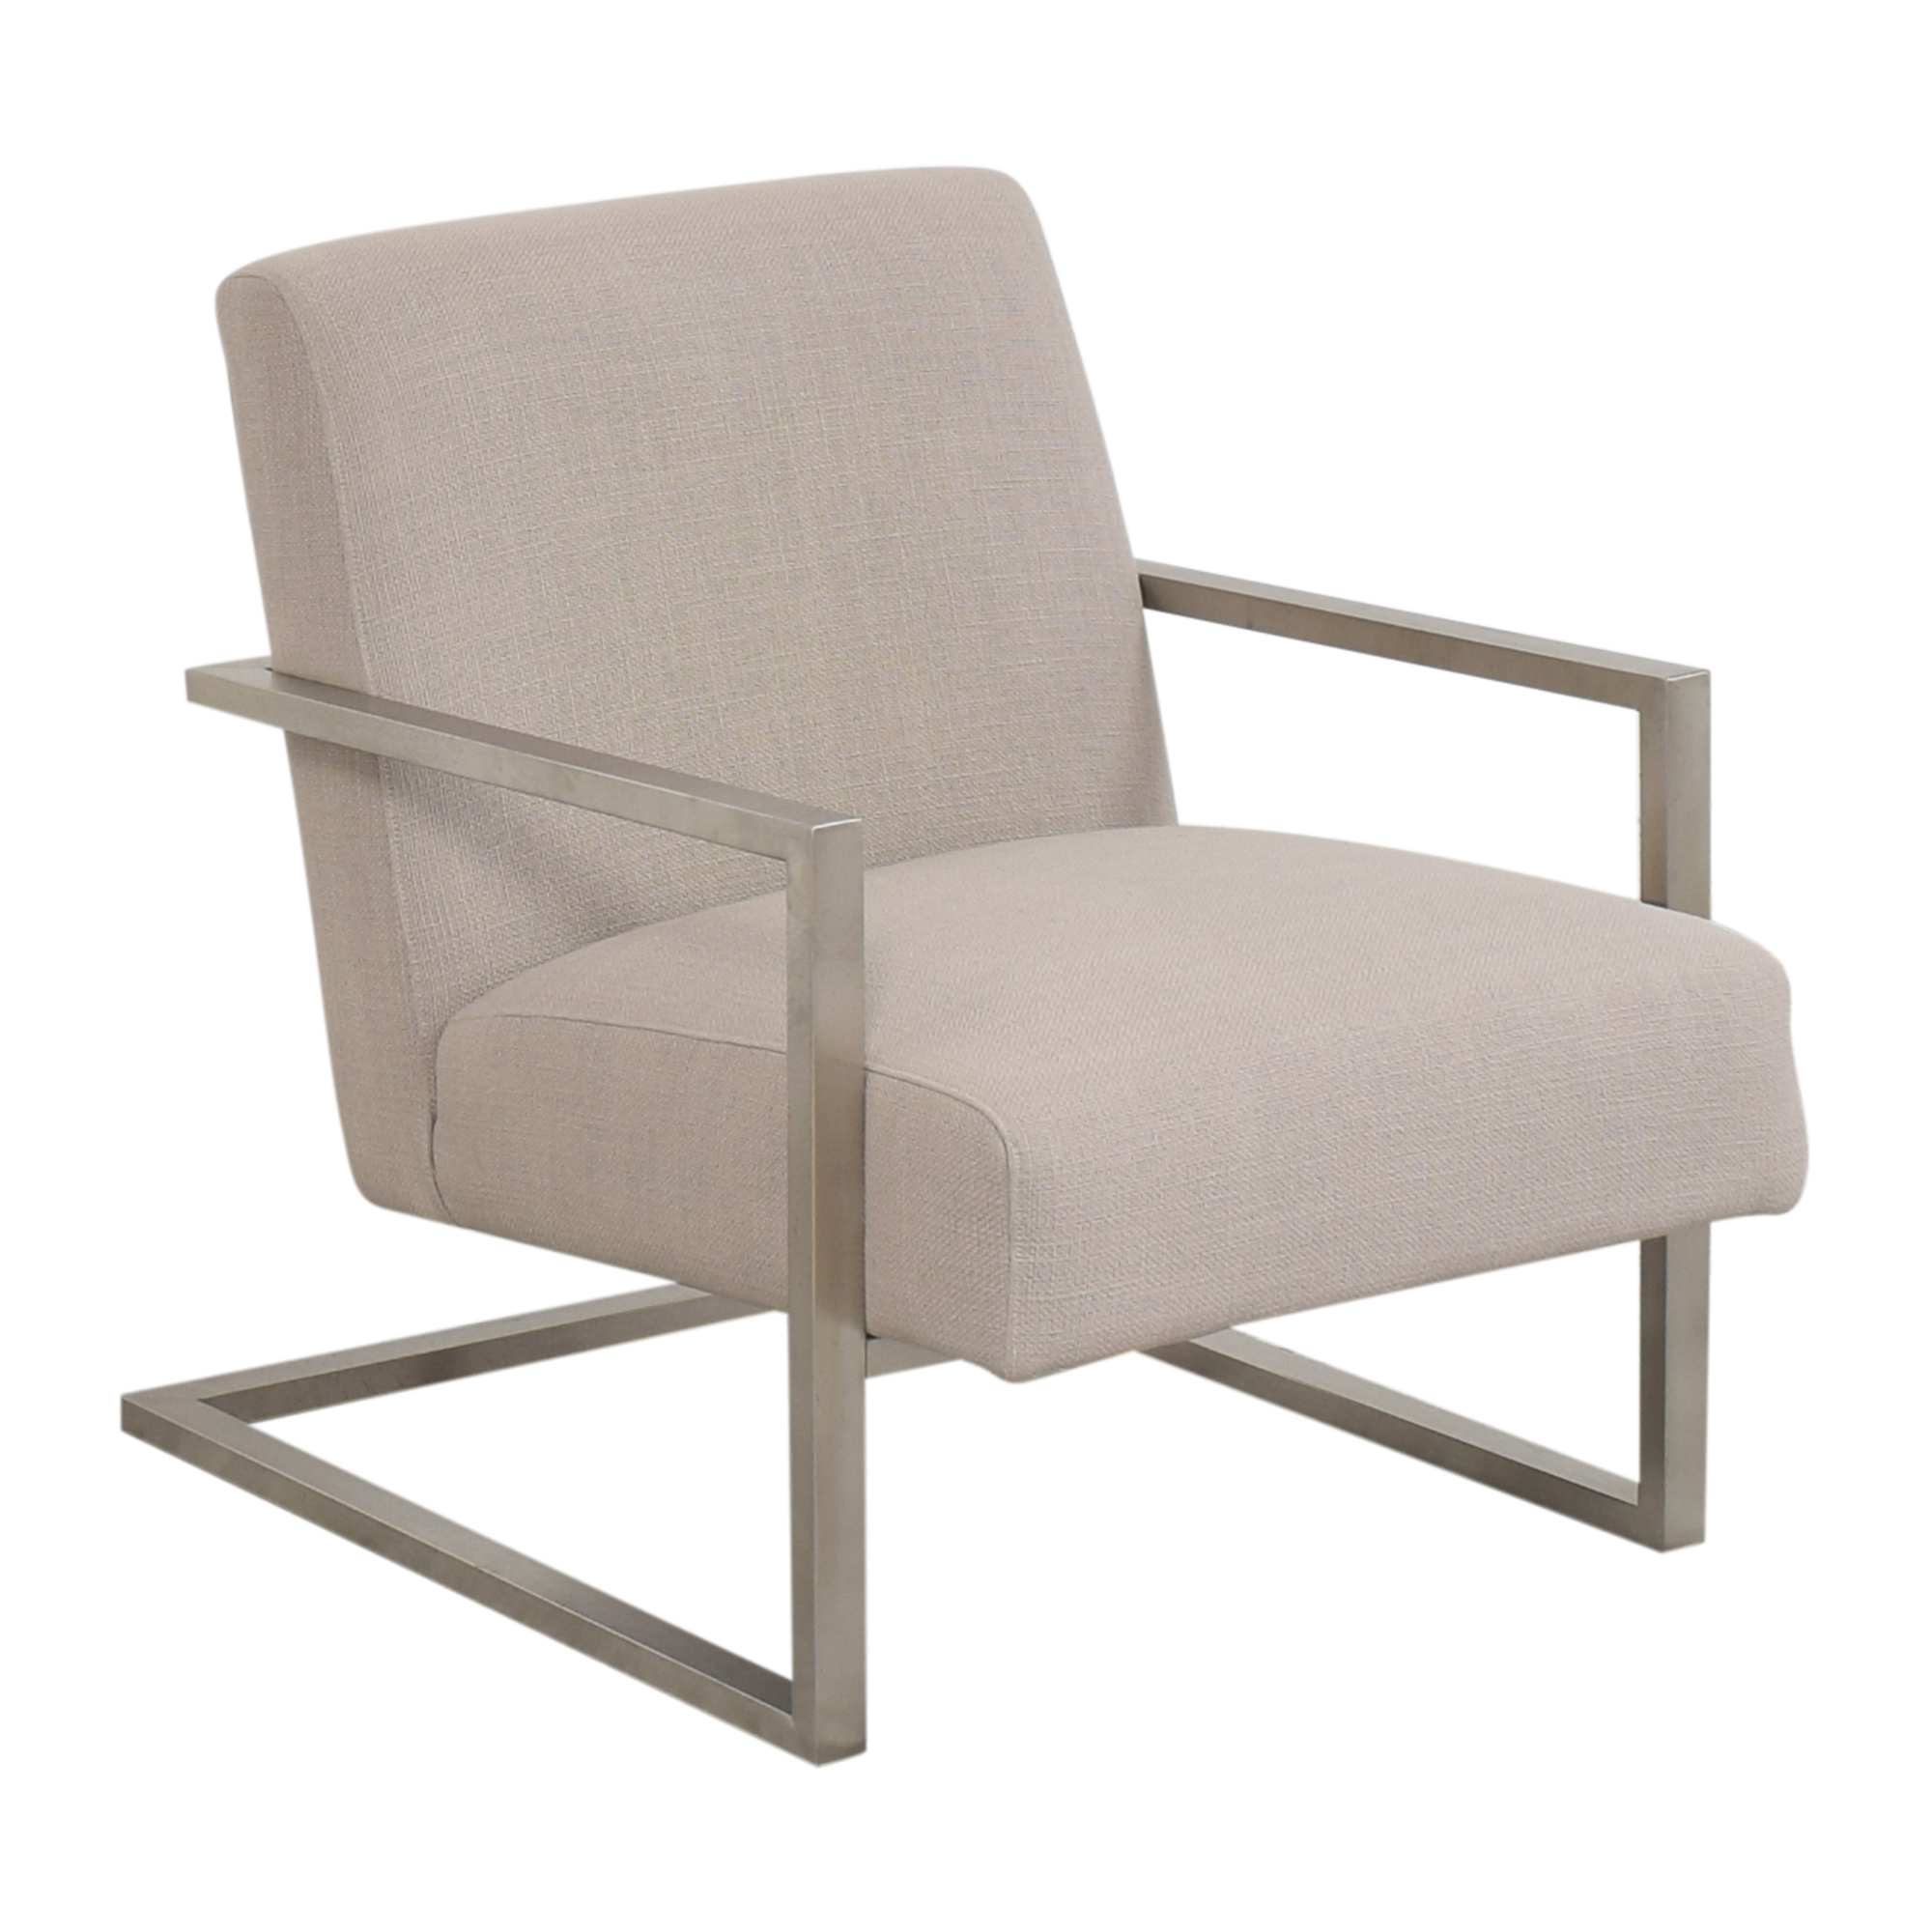 Armen Living Armen Living Skyline Accent Chair silver and gray